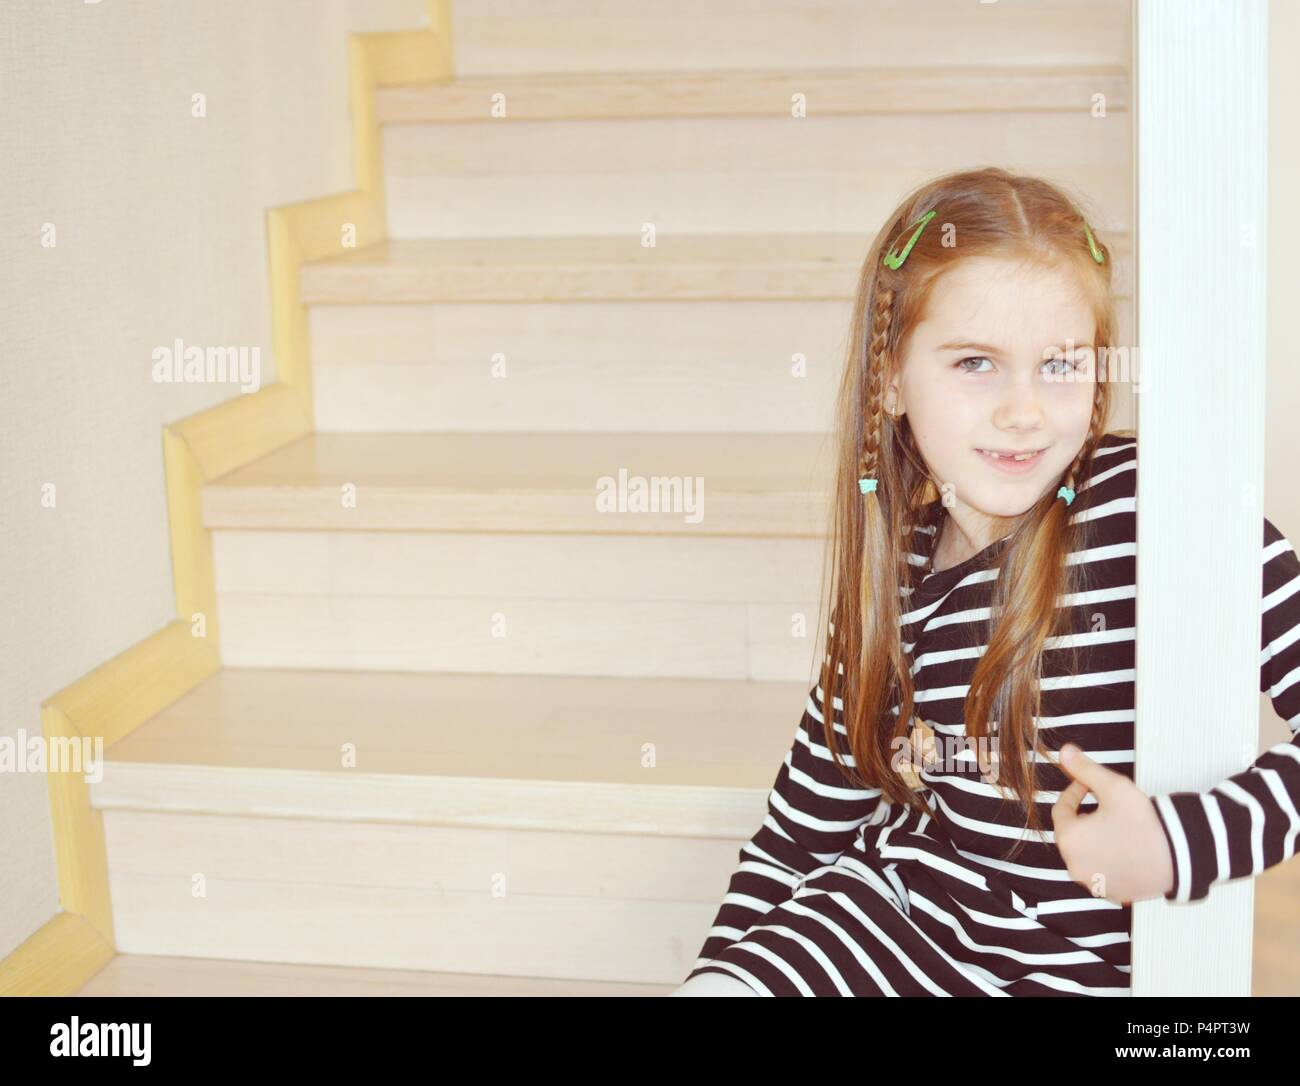 Blond child, girl 7-9 years old, standing on the stairs and smiling, closeup portrait, copy space - Stock Image